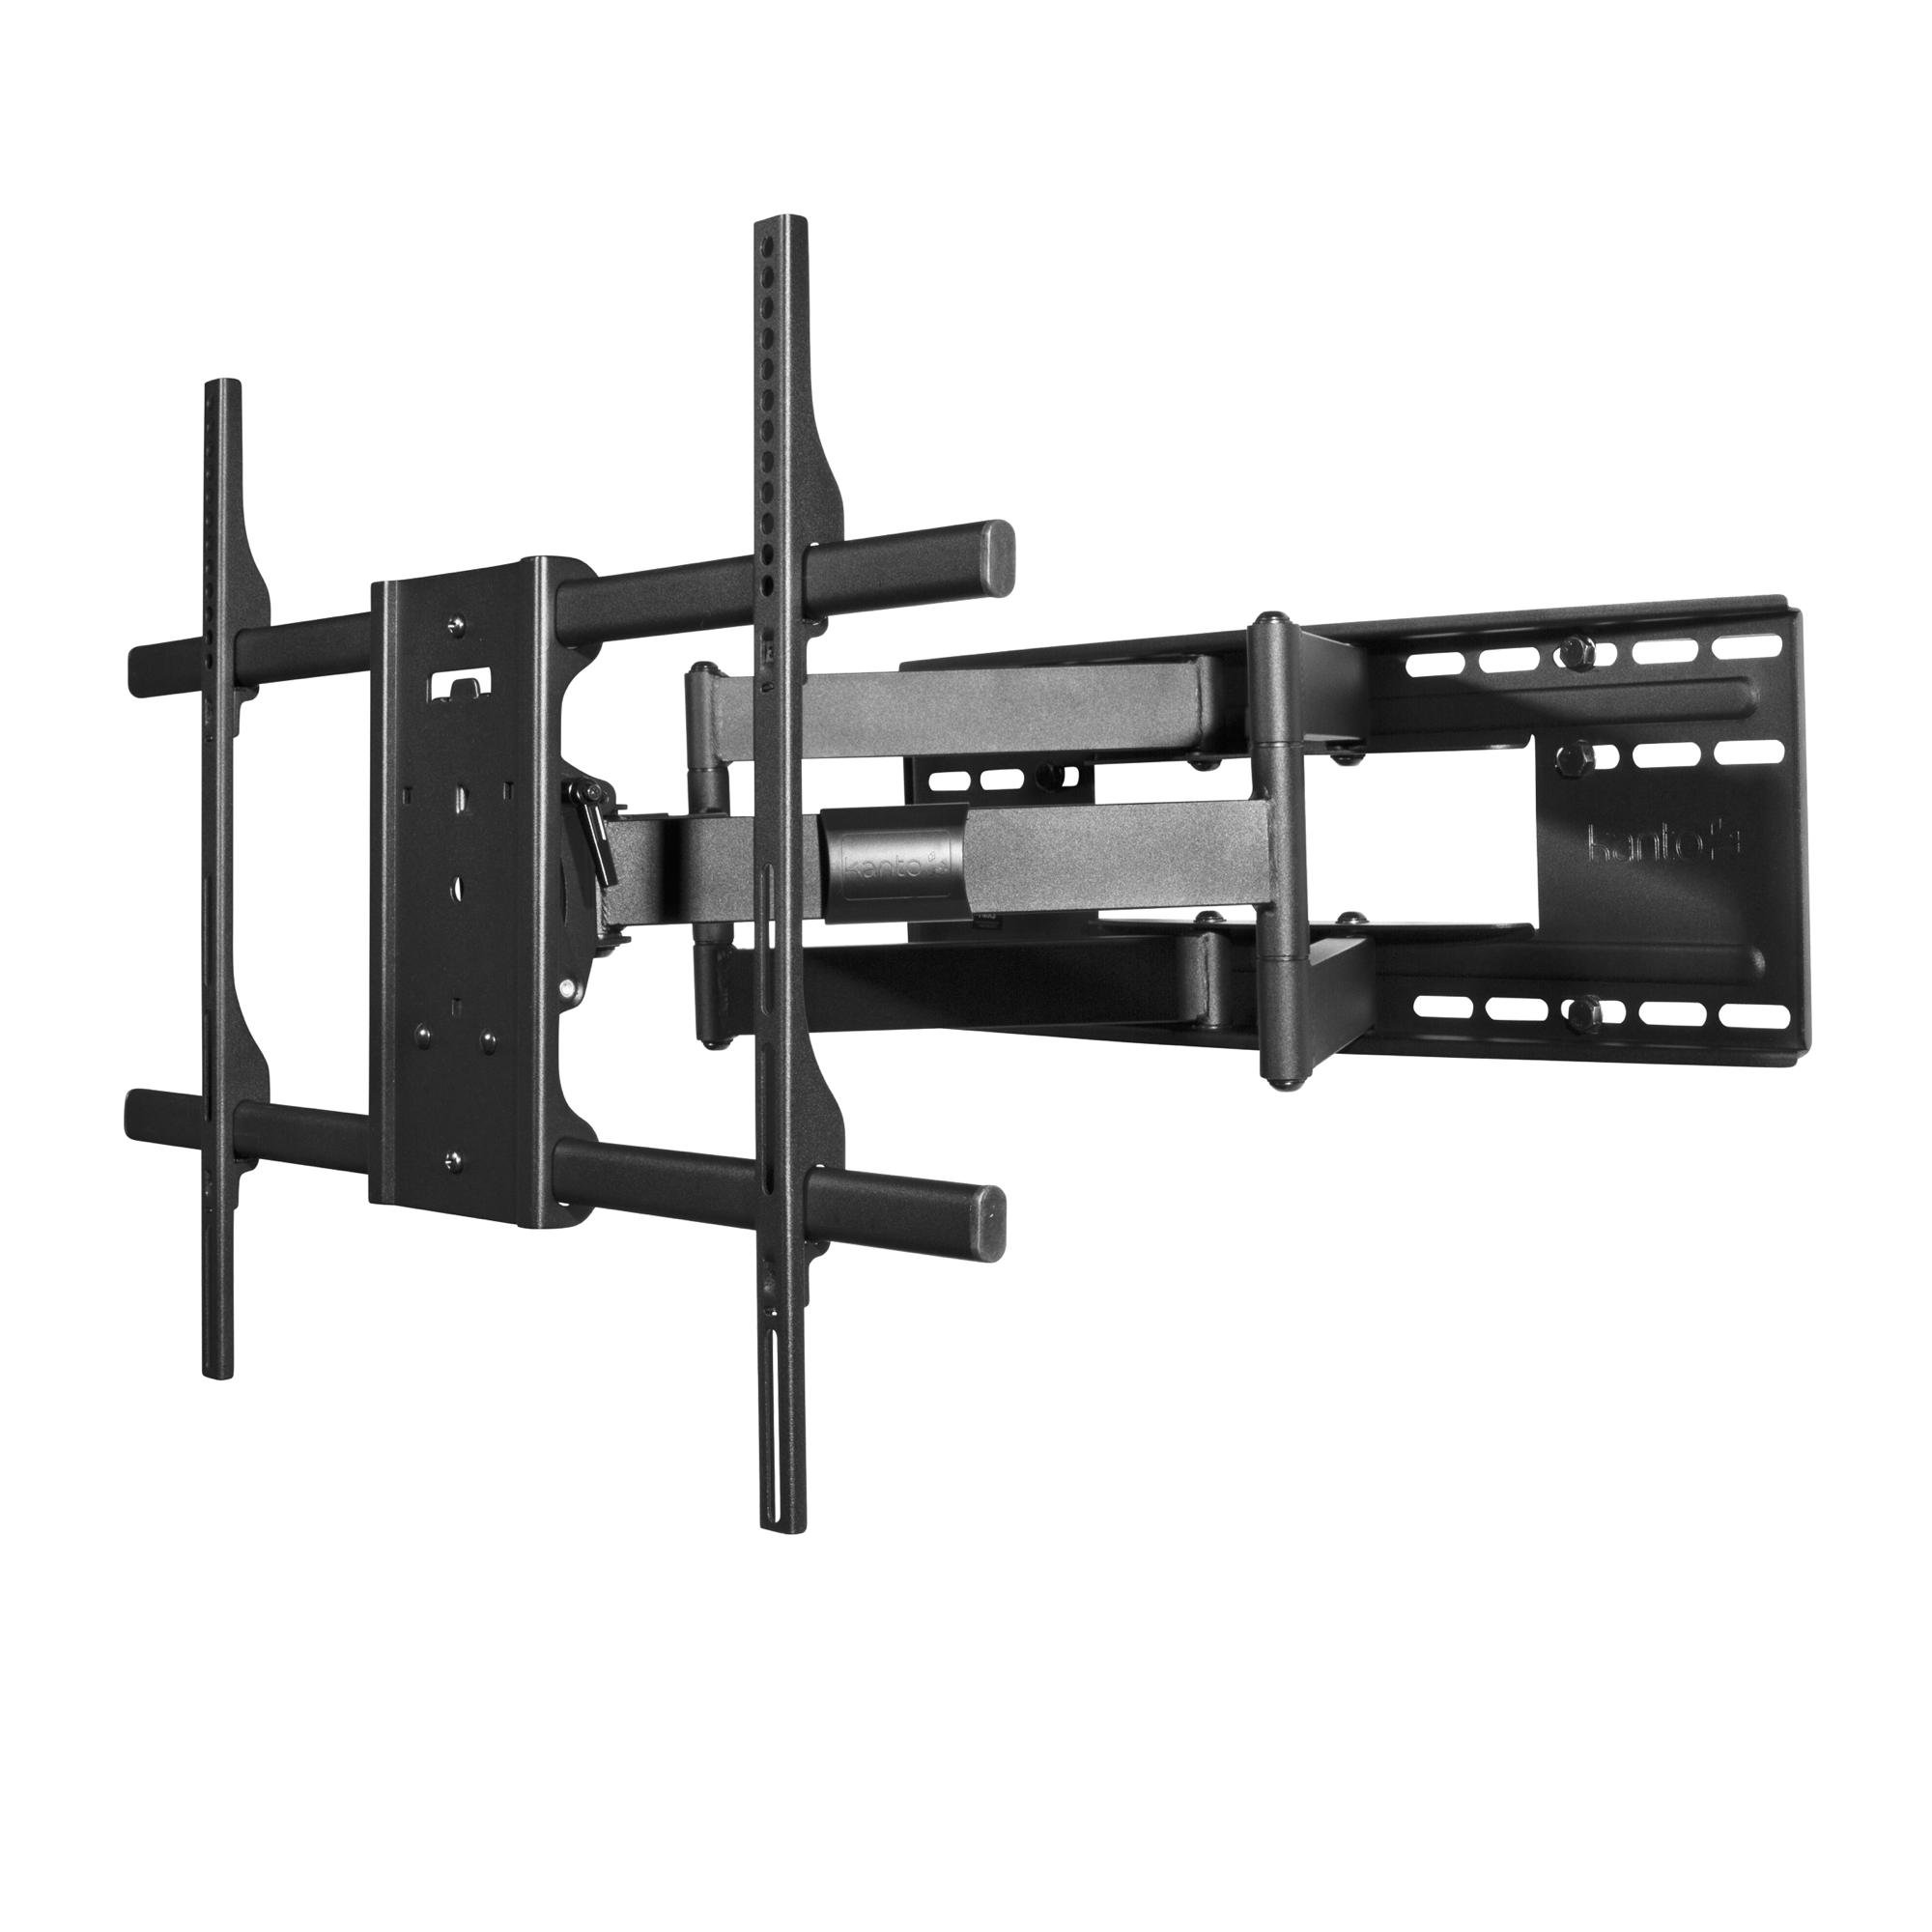 Kanto FMX3 Full Motion TV Wall Mount – Supports 40-90 inch Television Monitors – Superior Quality and Safety